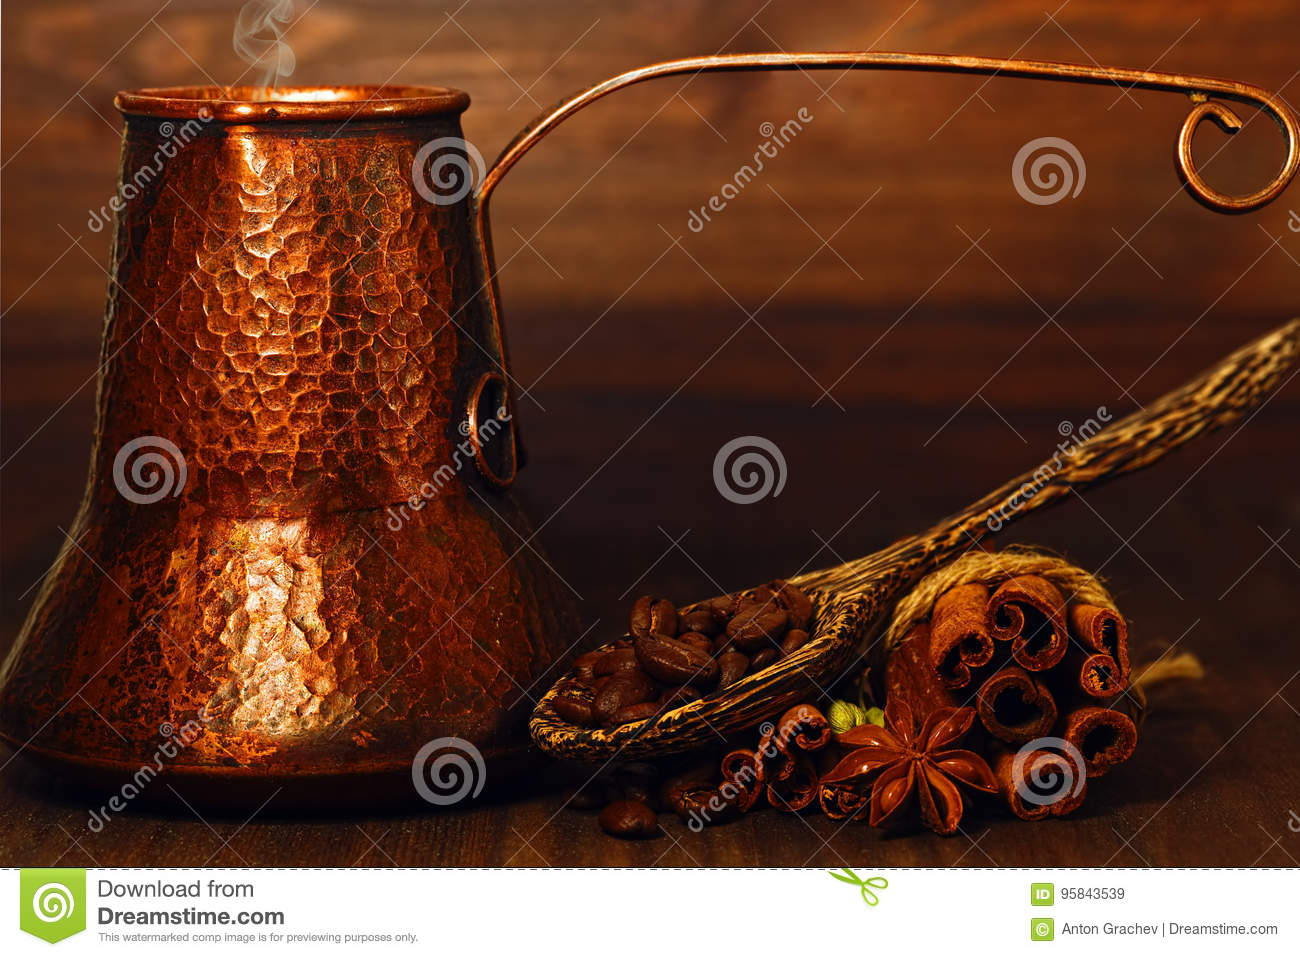 Turk coffee pot and coffee beans with spices on the table